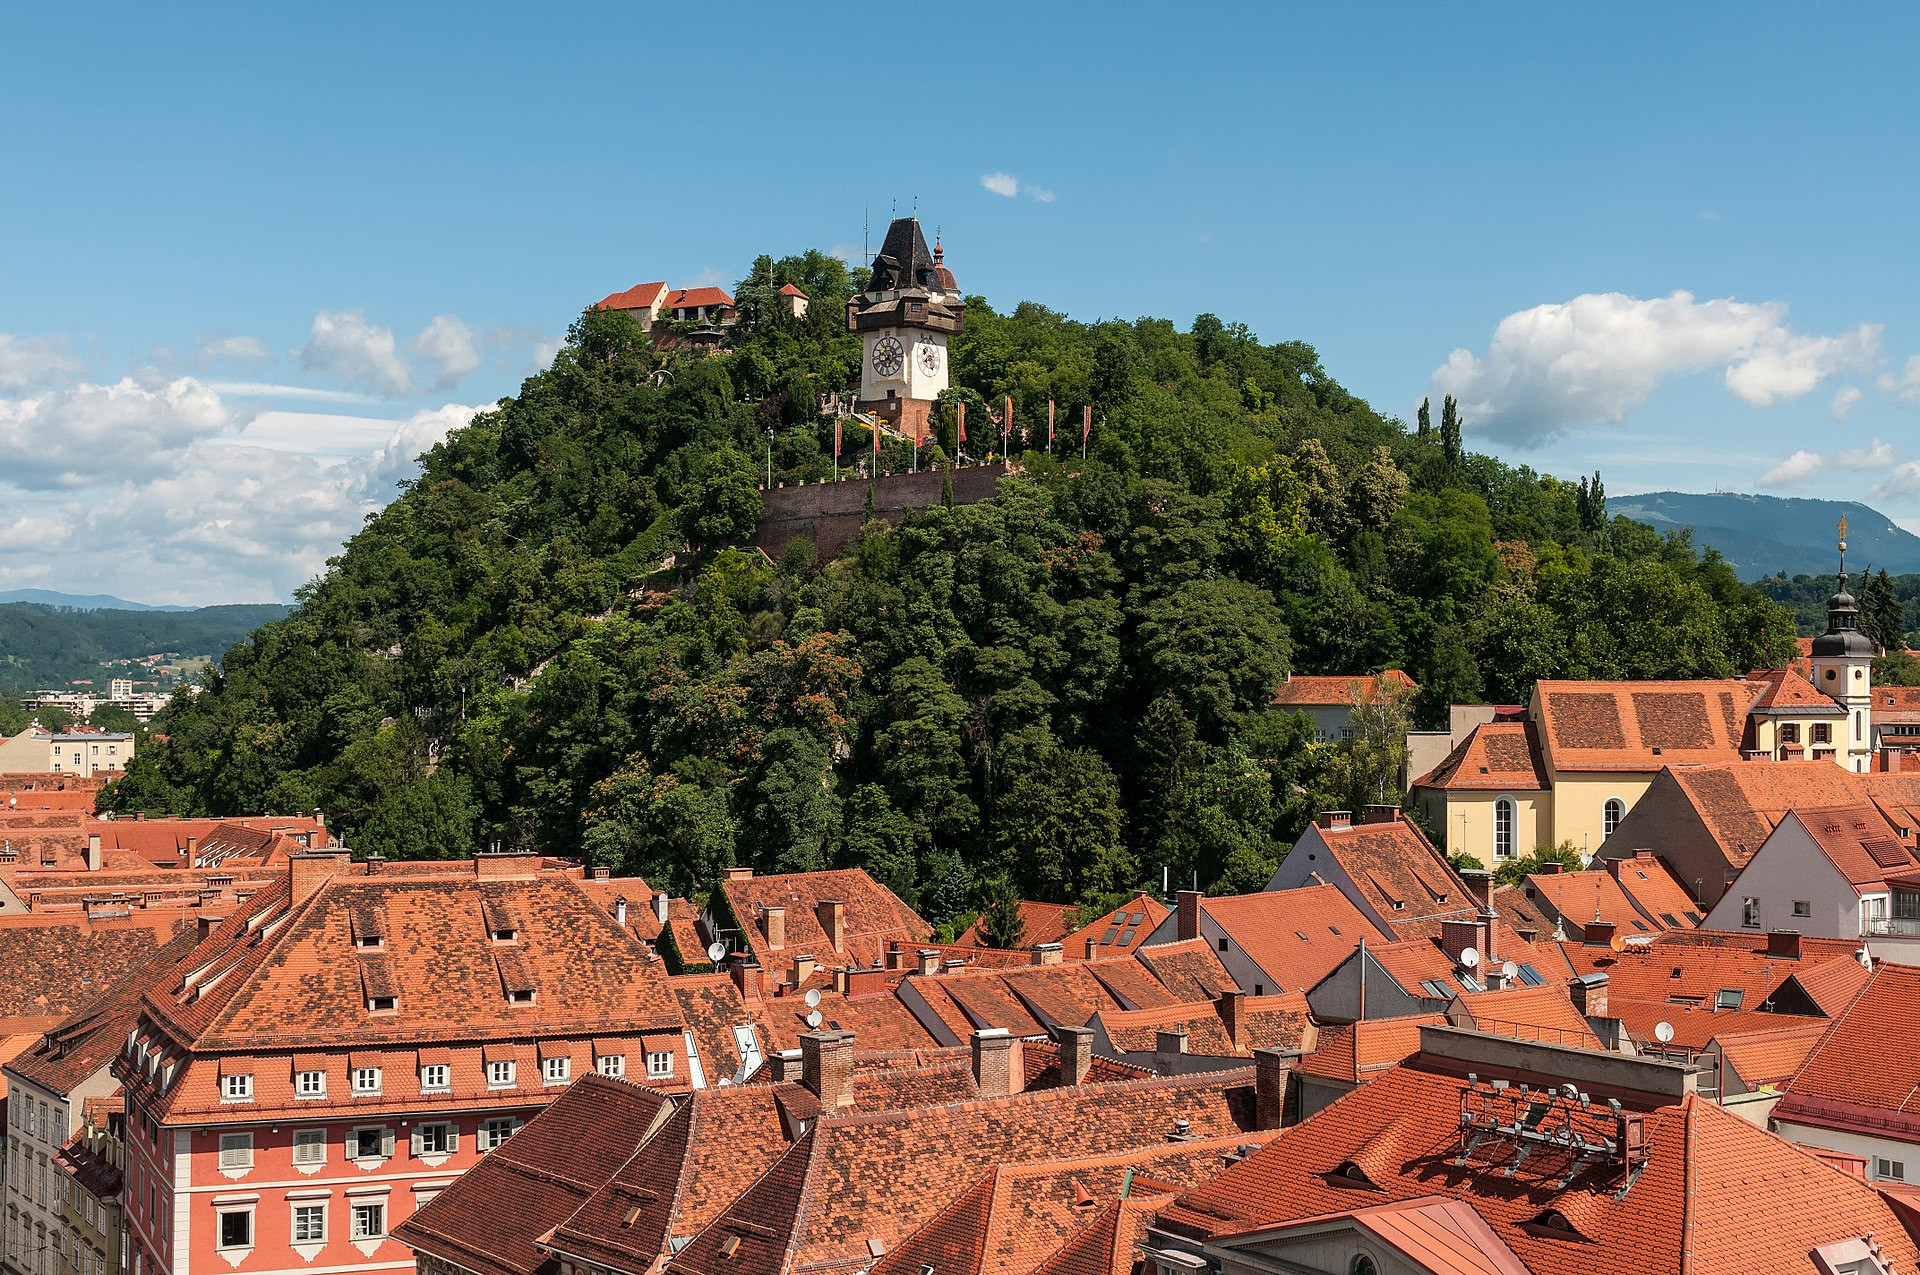 A referendum will probably decide the fate of the Graz Winter Olympic bid ©Wikipedia